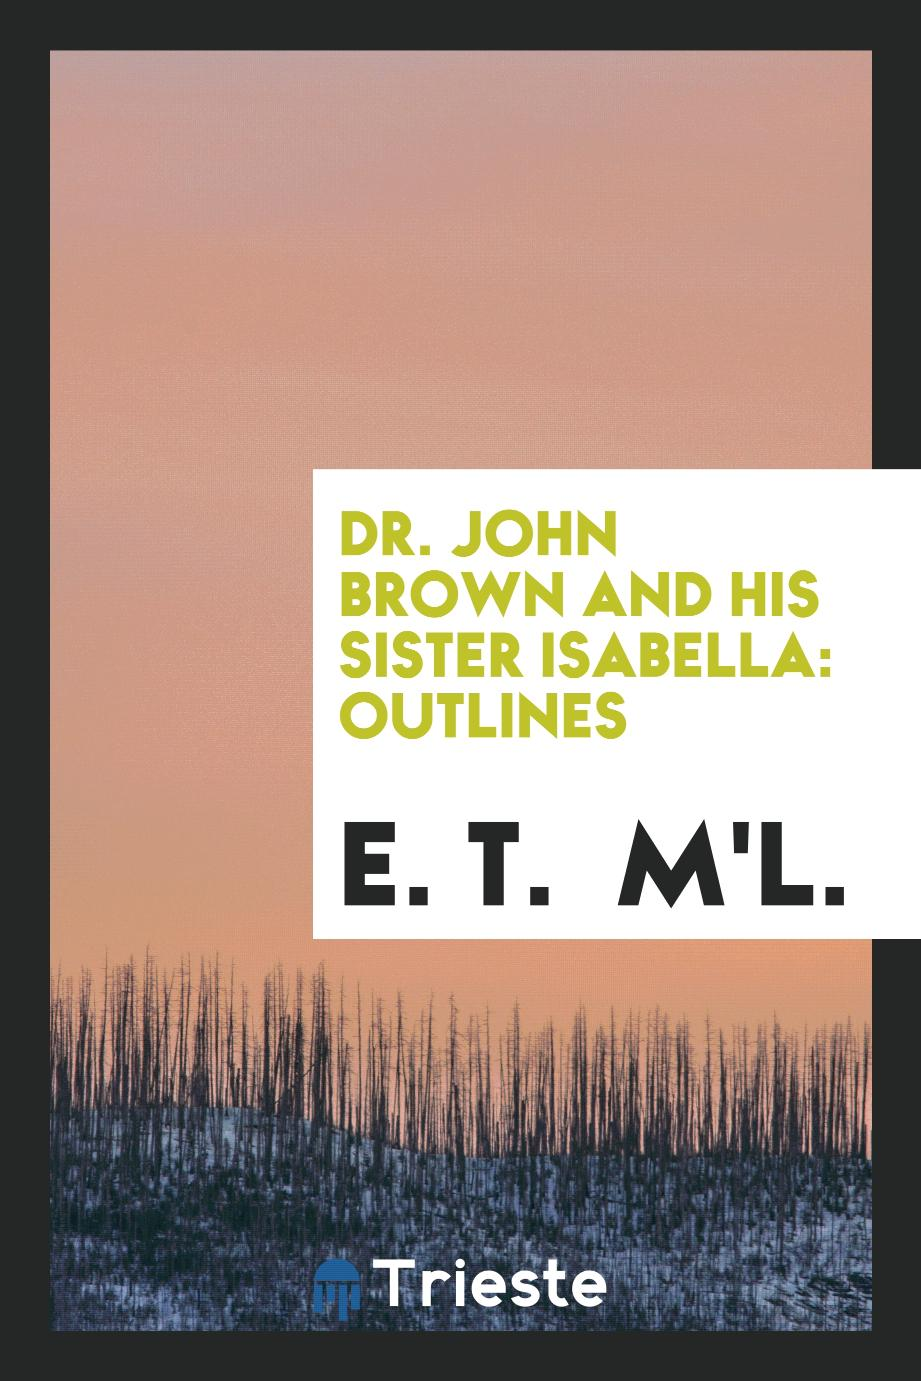 Dr. John Brown and His Sister Isabella: Outlines